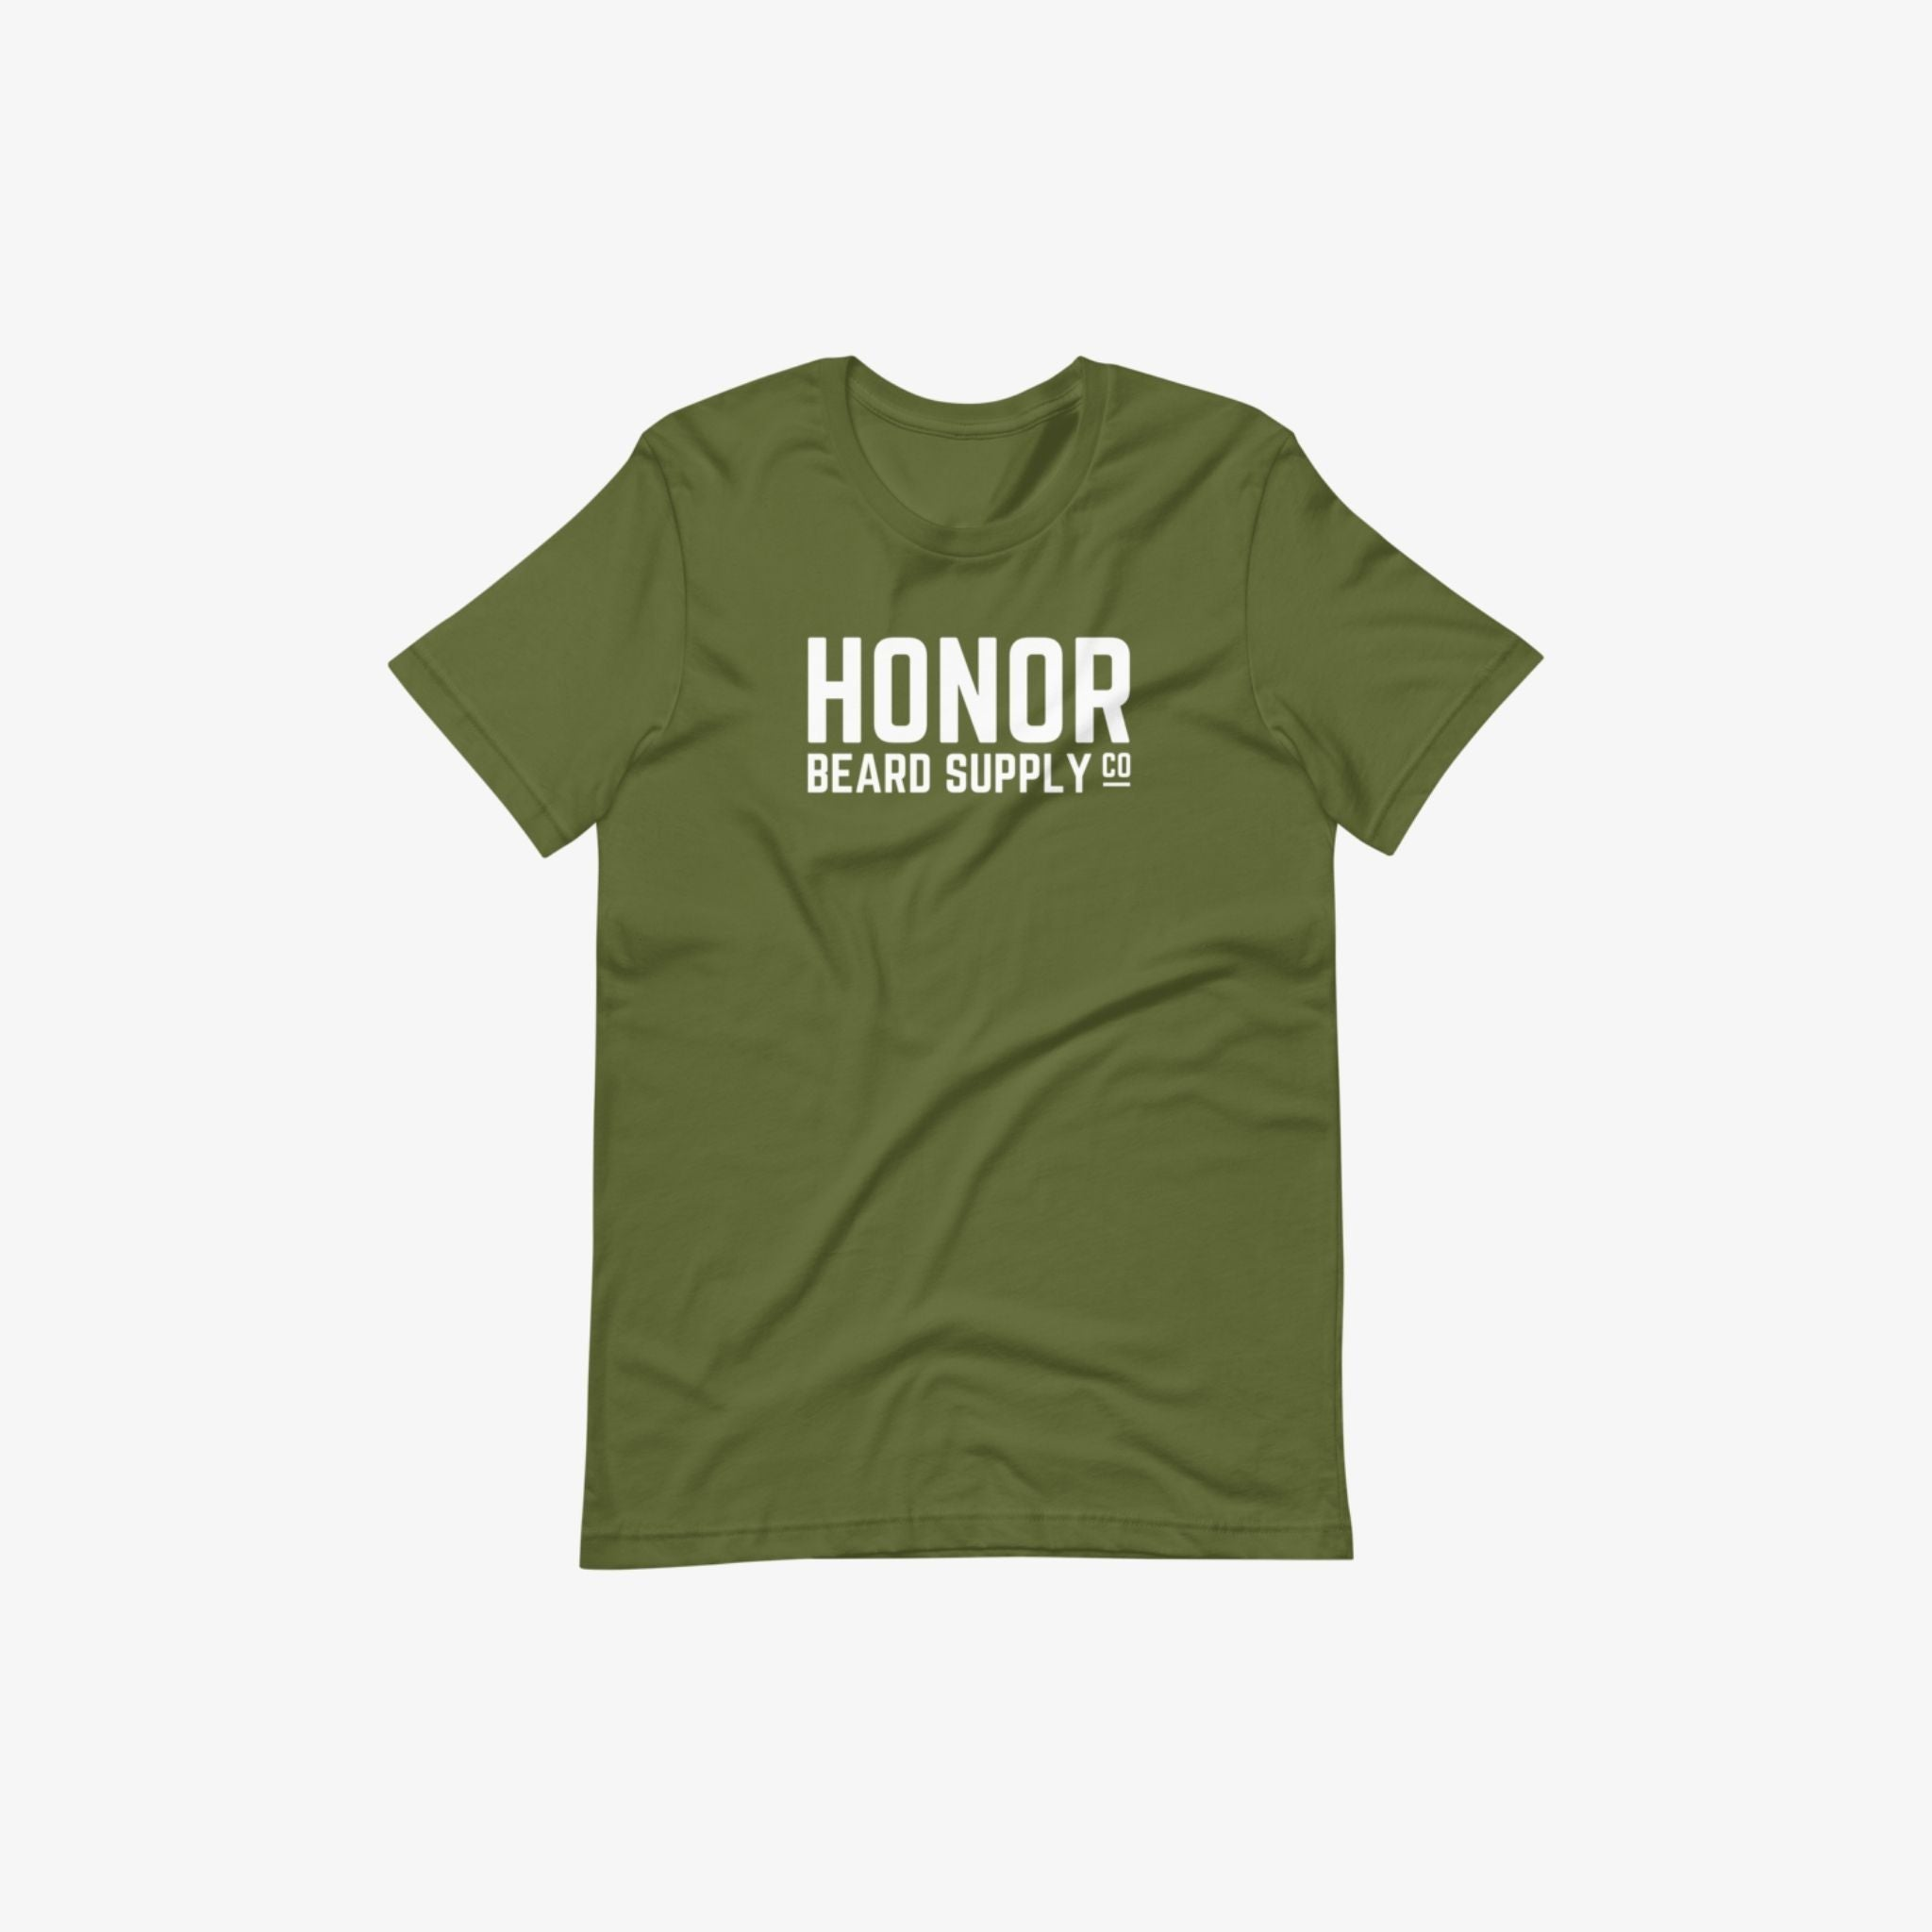 Honor's supply company tee in olive and on a white background